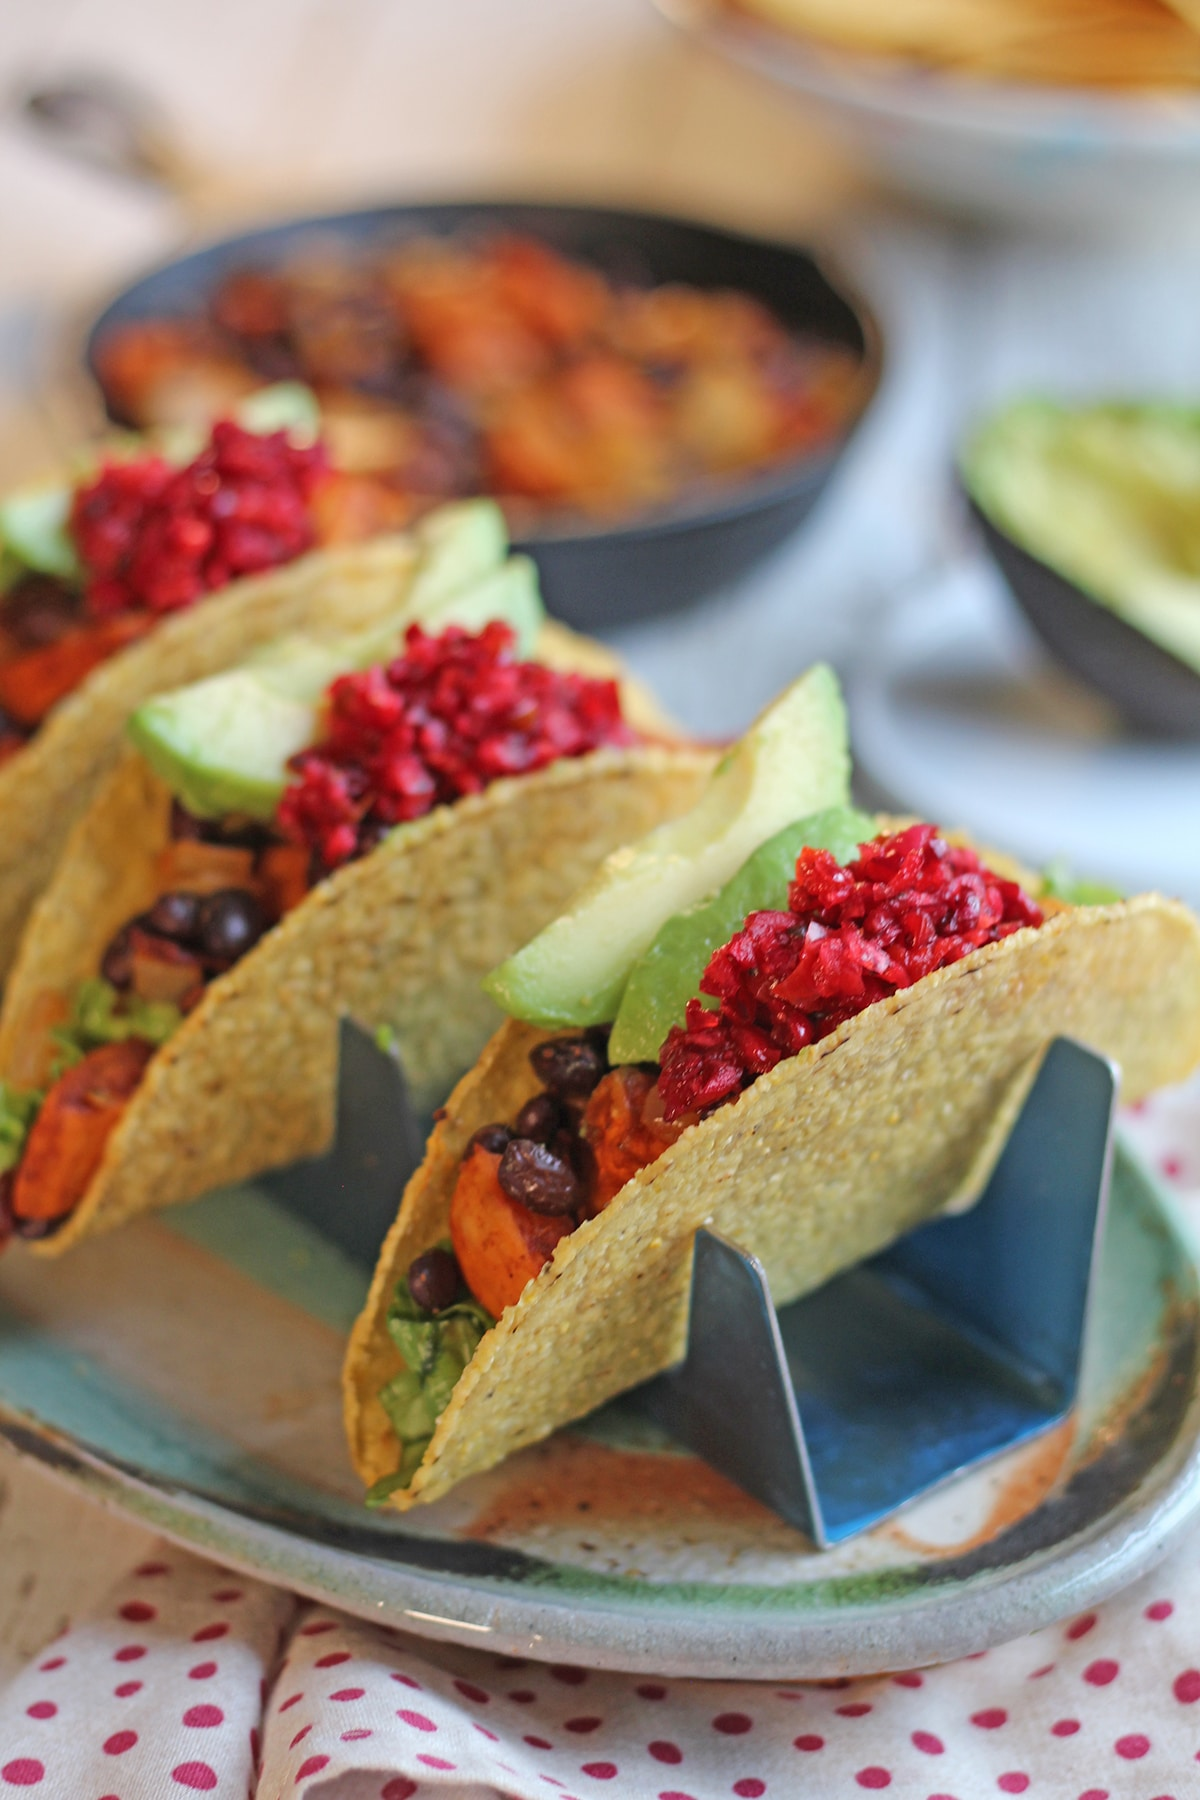 Sweet potato and black bean tacos topped with cranberry salsa.